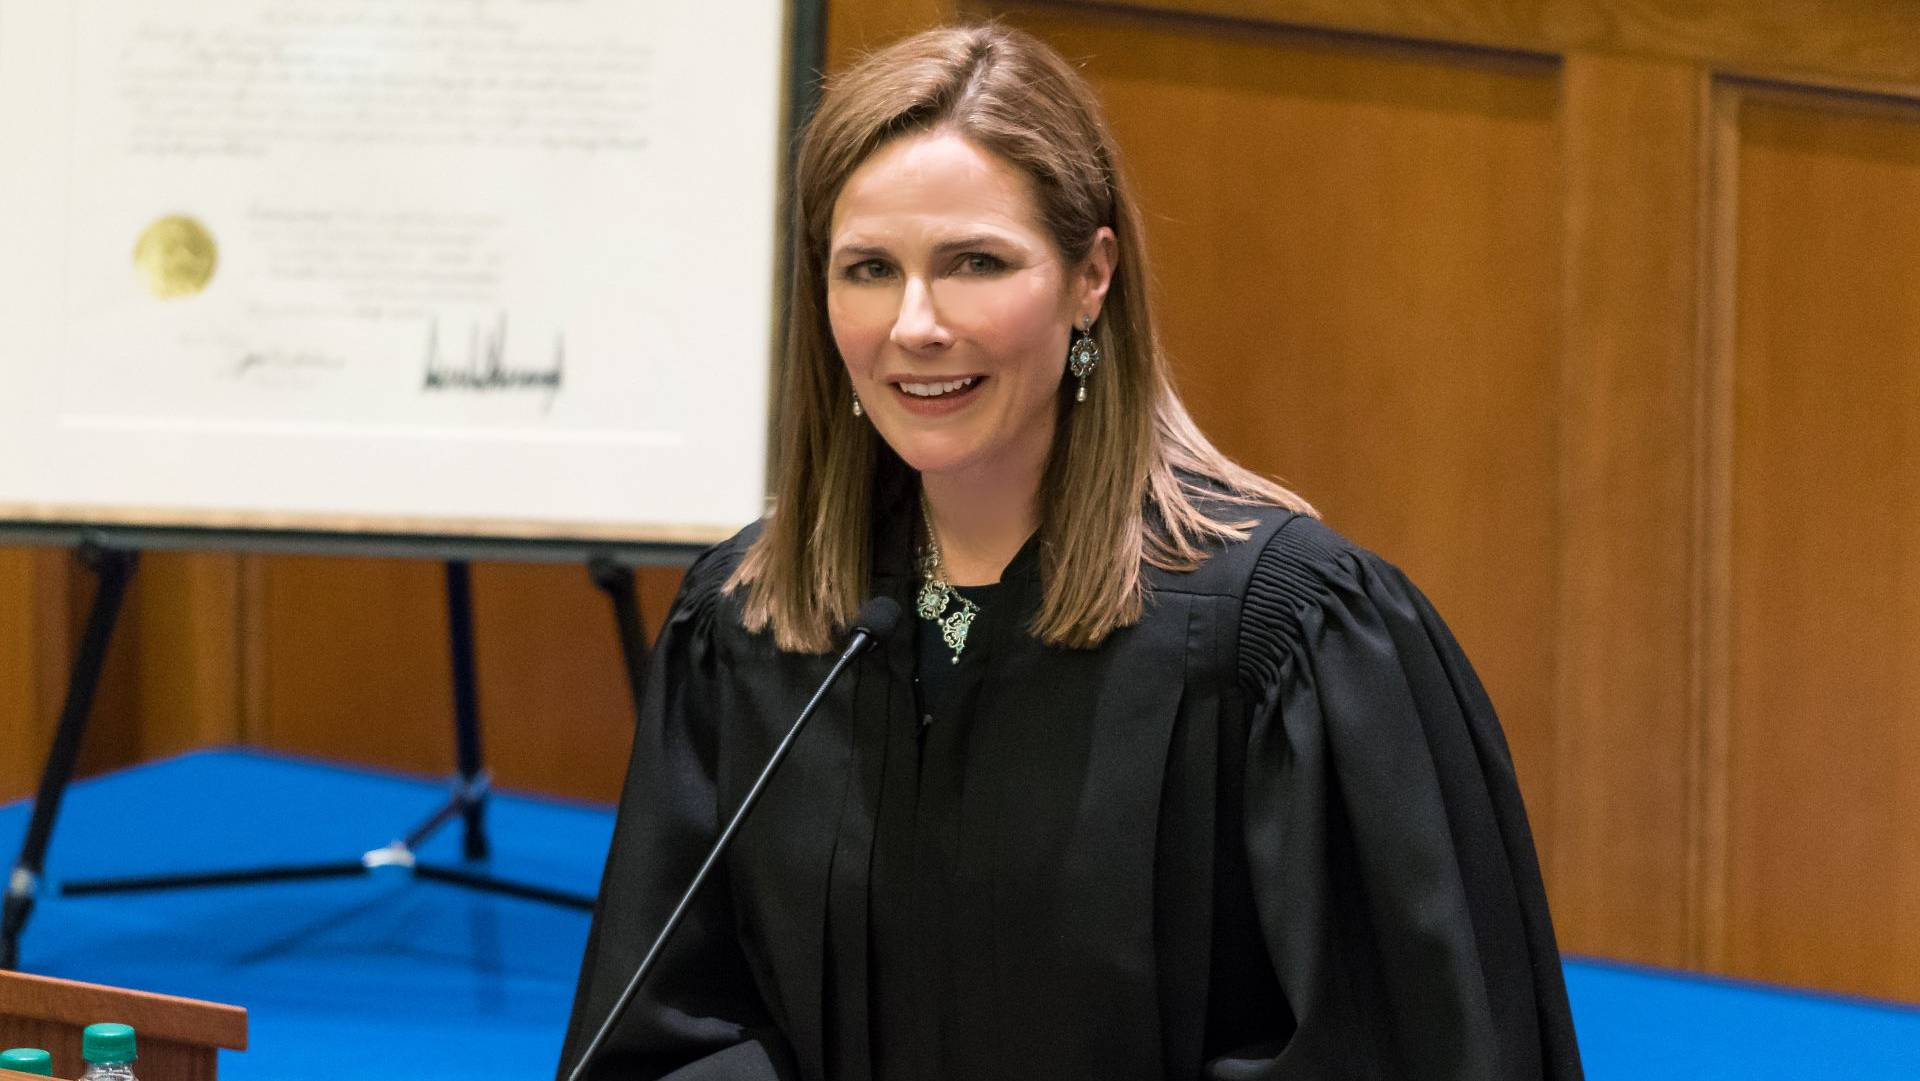 An image of Supreme Court Justice Judge Amy Coney Barrett speaking in her robe in what look like aclassroom setting, she is smiling, her hair islite brown and blonde highlights, she is an attractive woman.